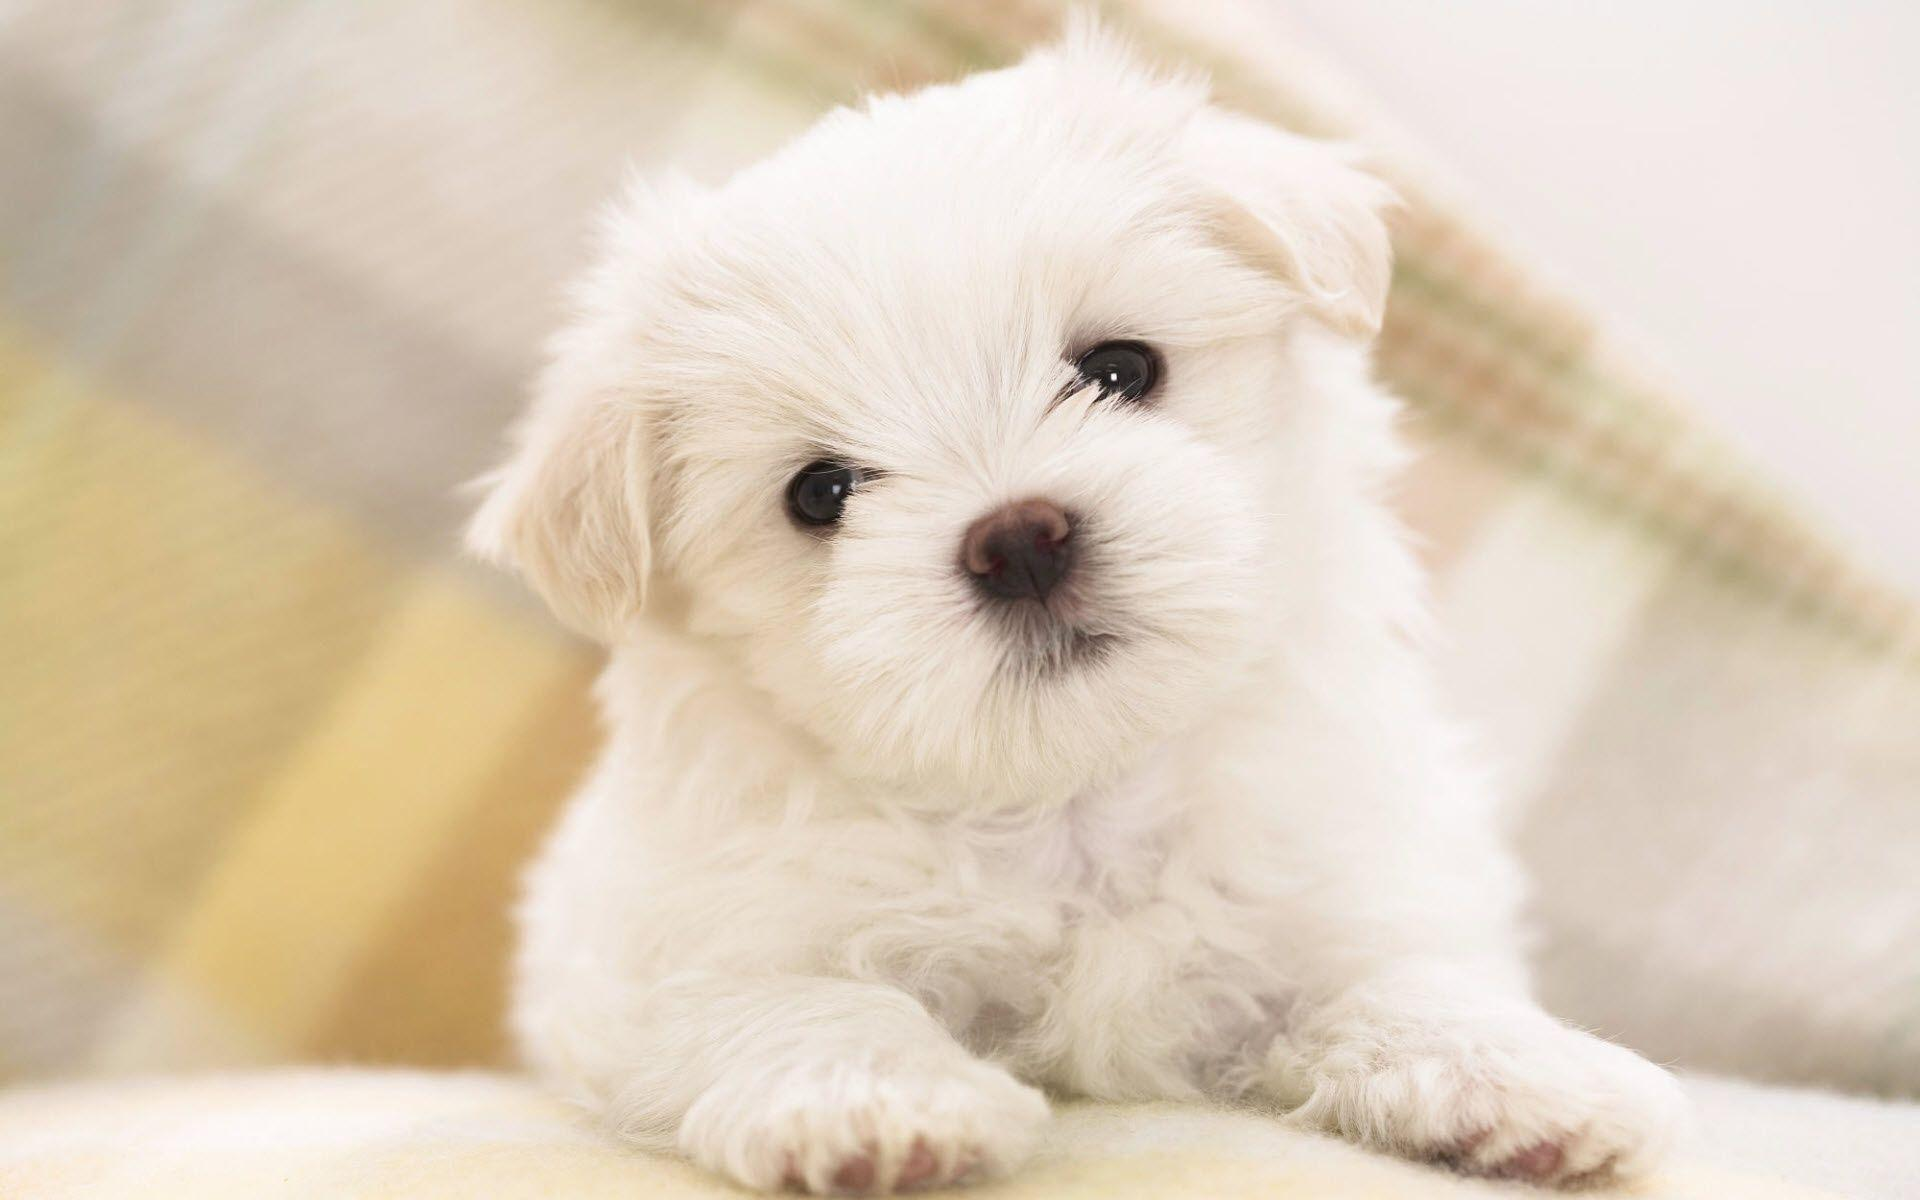 Top Free Puppy Desktop Backgrounds